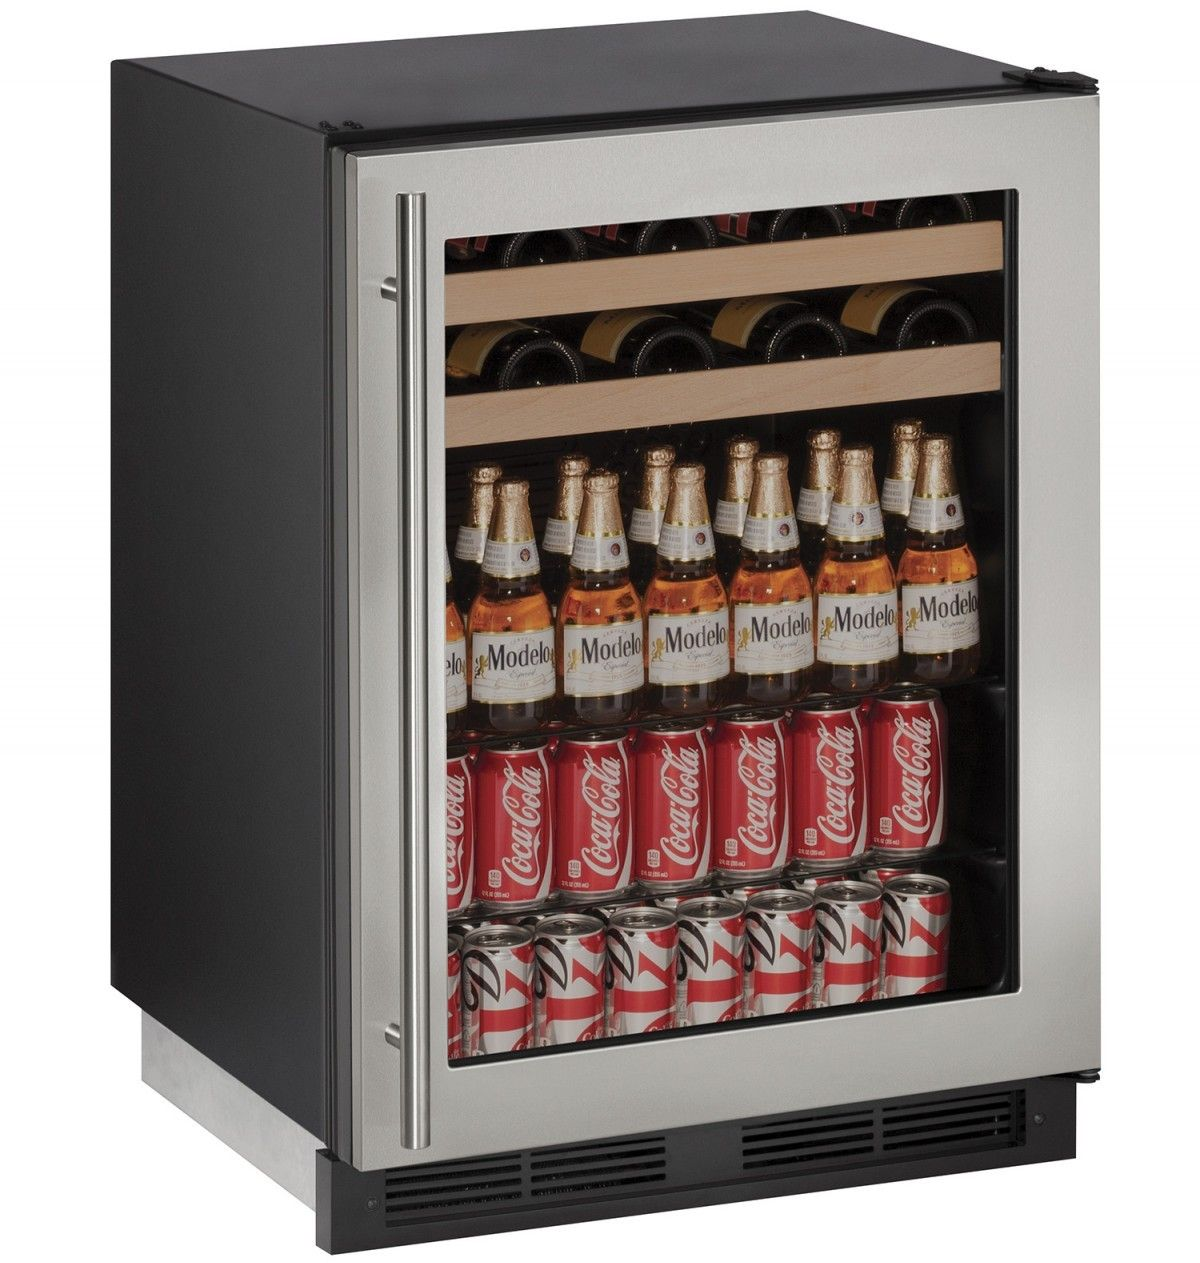 U Line 1000 Series U1224bevs13b Beverage Center Beverage Refrigerator Built In Beverage Cooler